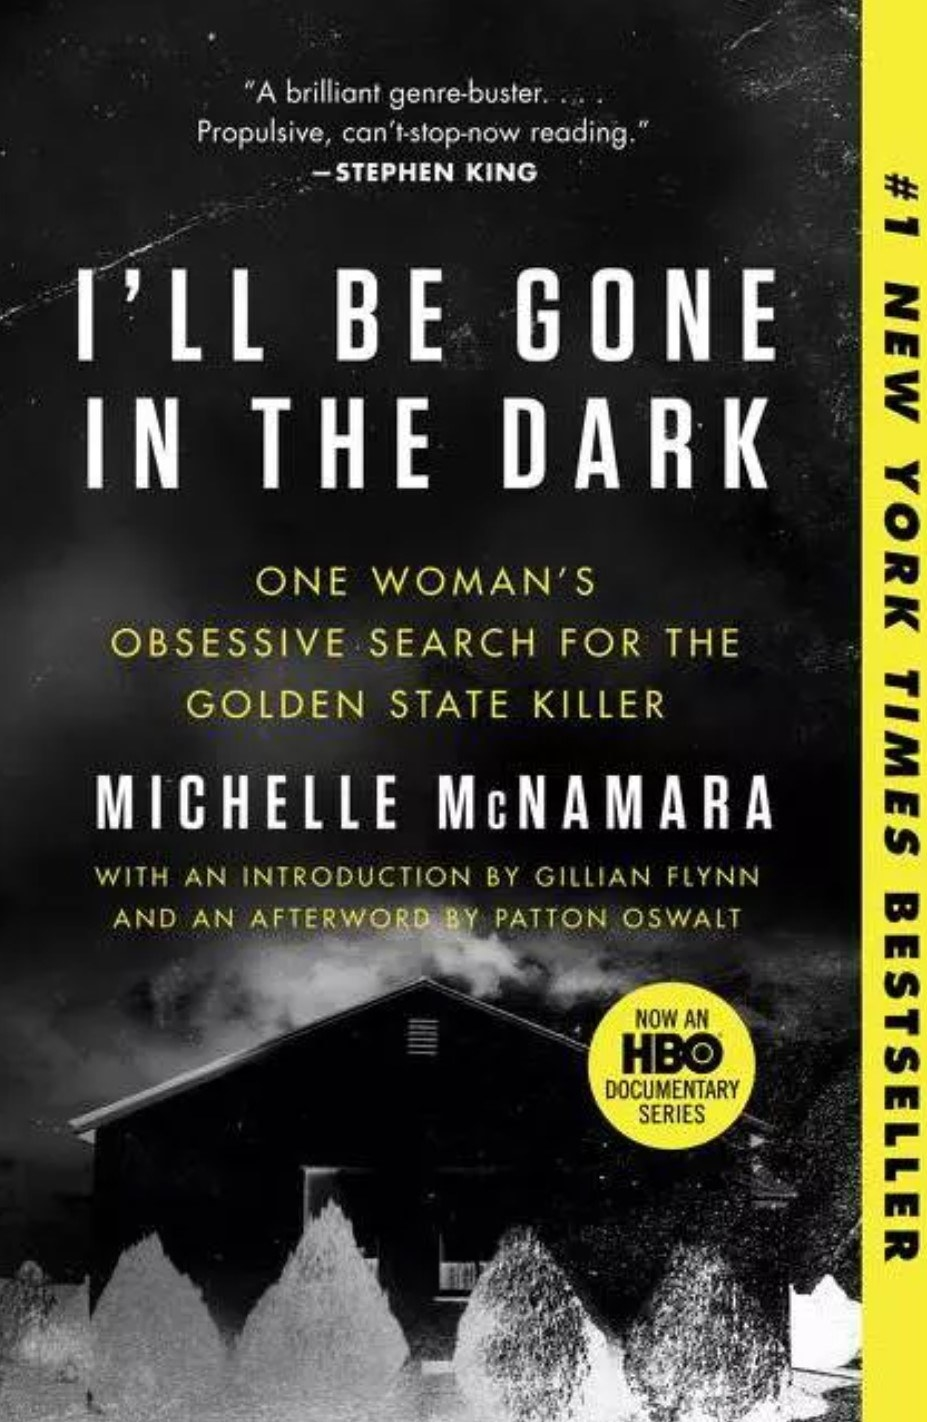 The cover of I'll Be Gone In The Dark by Michelle McNamara